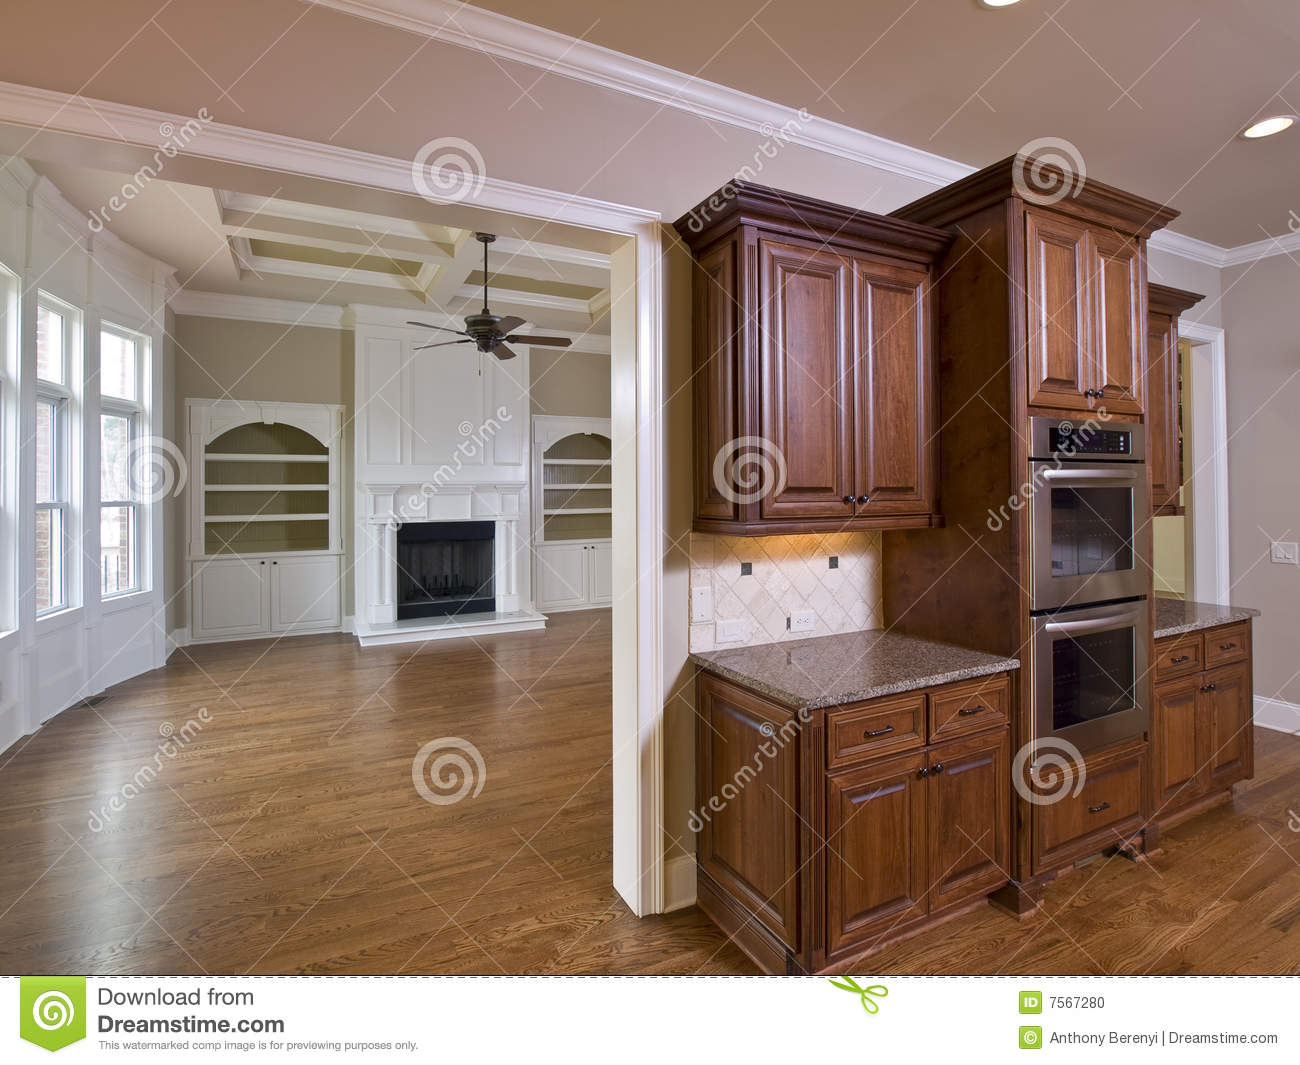 Luxury home interior kitchen cabinets and living room with fireplace